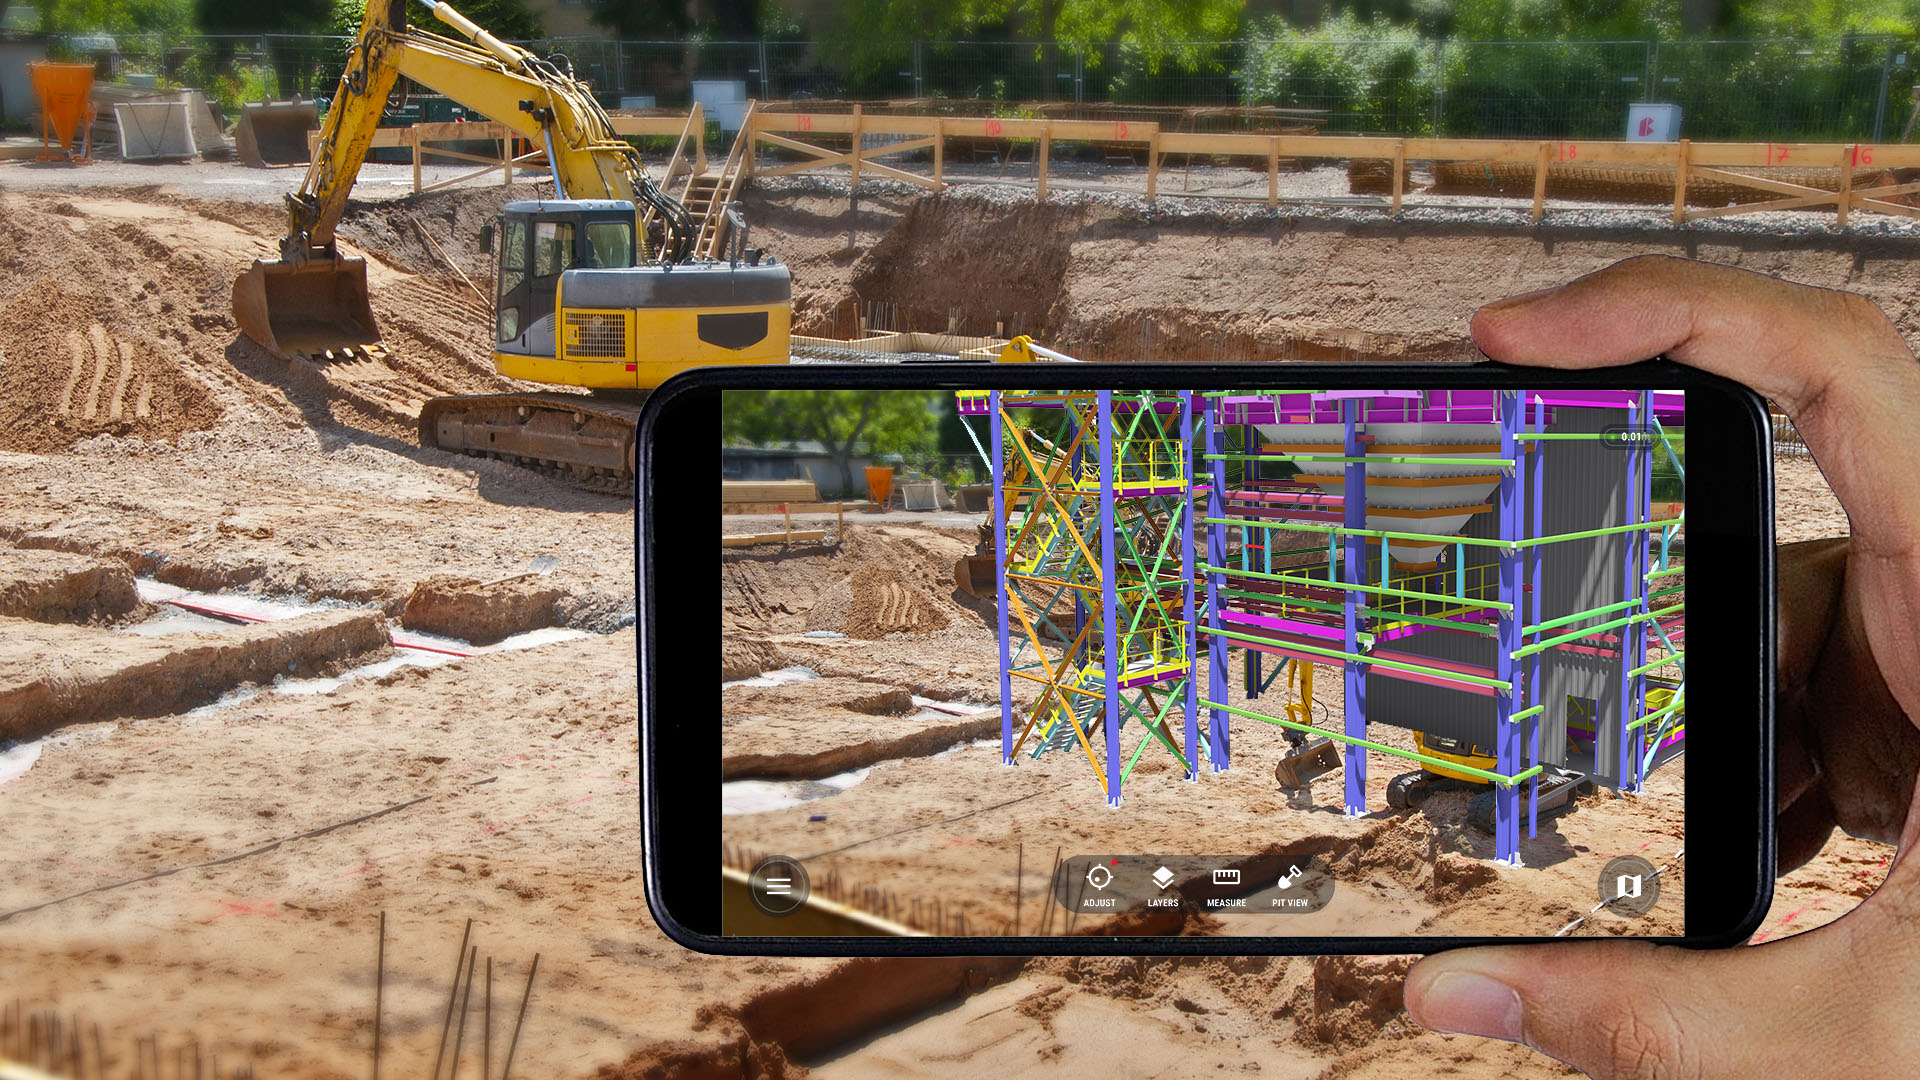 Leading GIS and CAD augmented reality AR system for construction sites